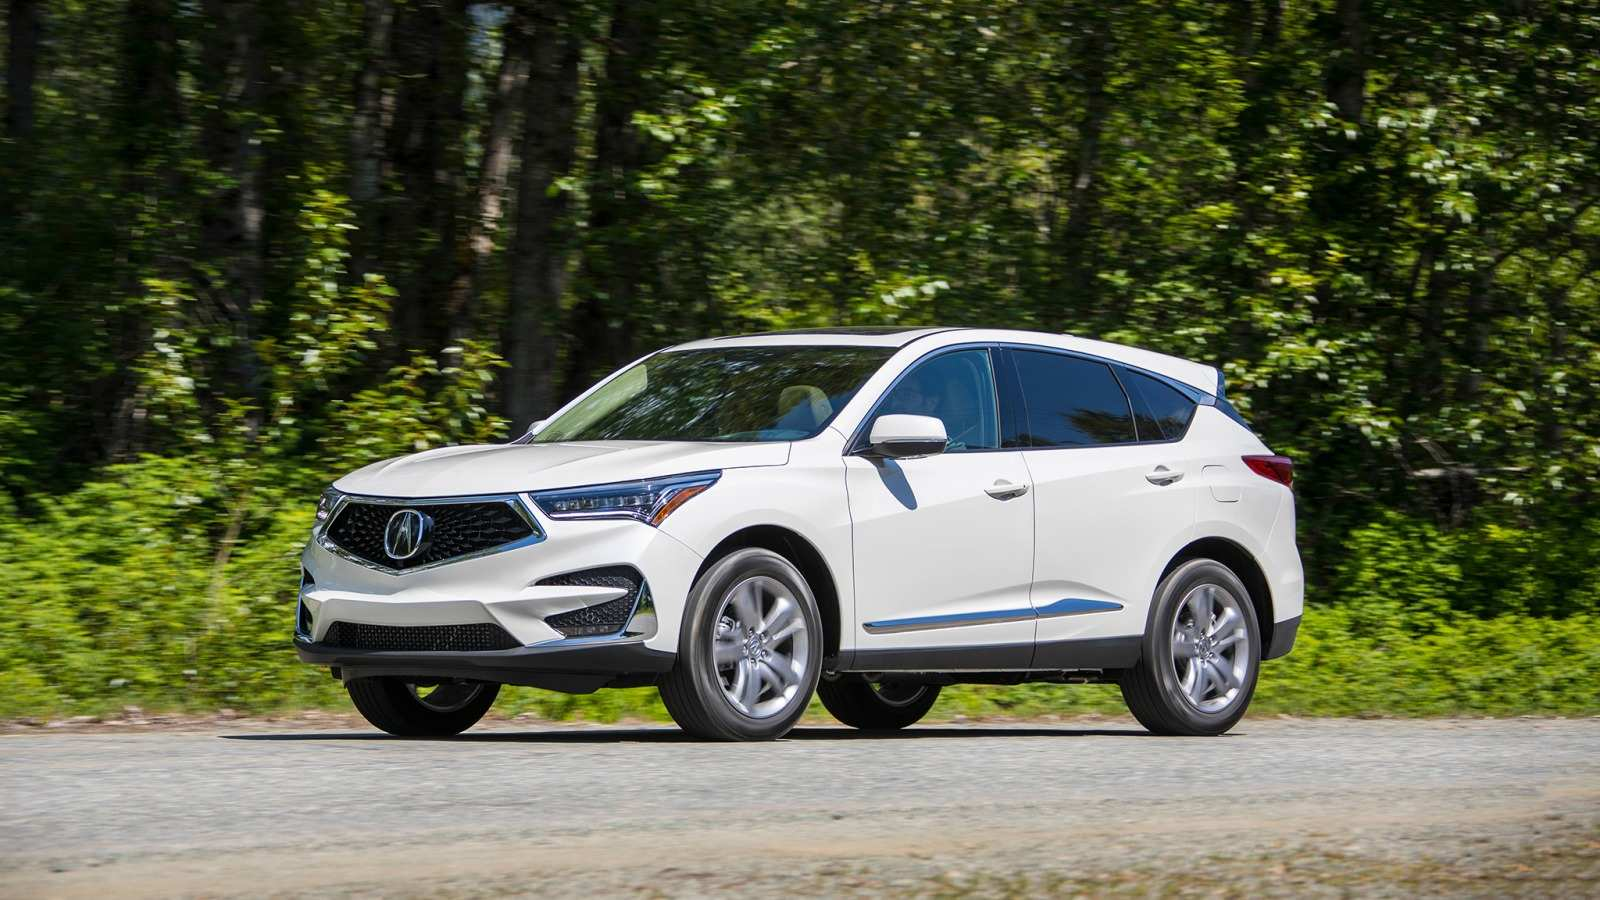 90 The 2019 Acura Rdx Forum Style with 2019 Acura Rdx Forum